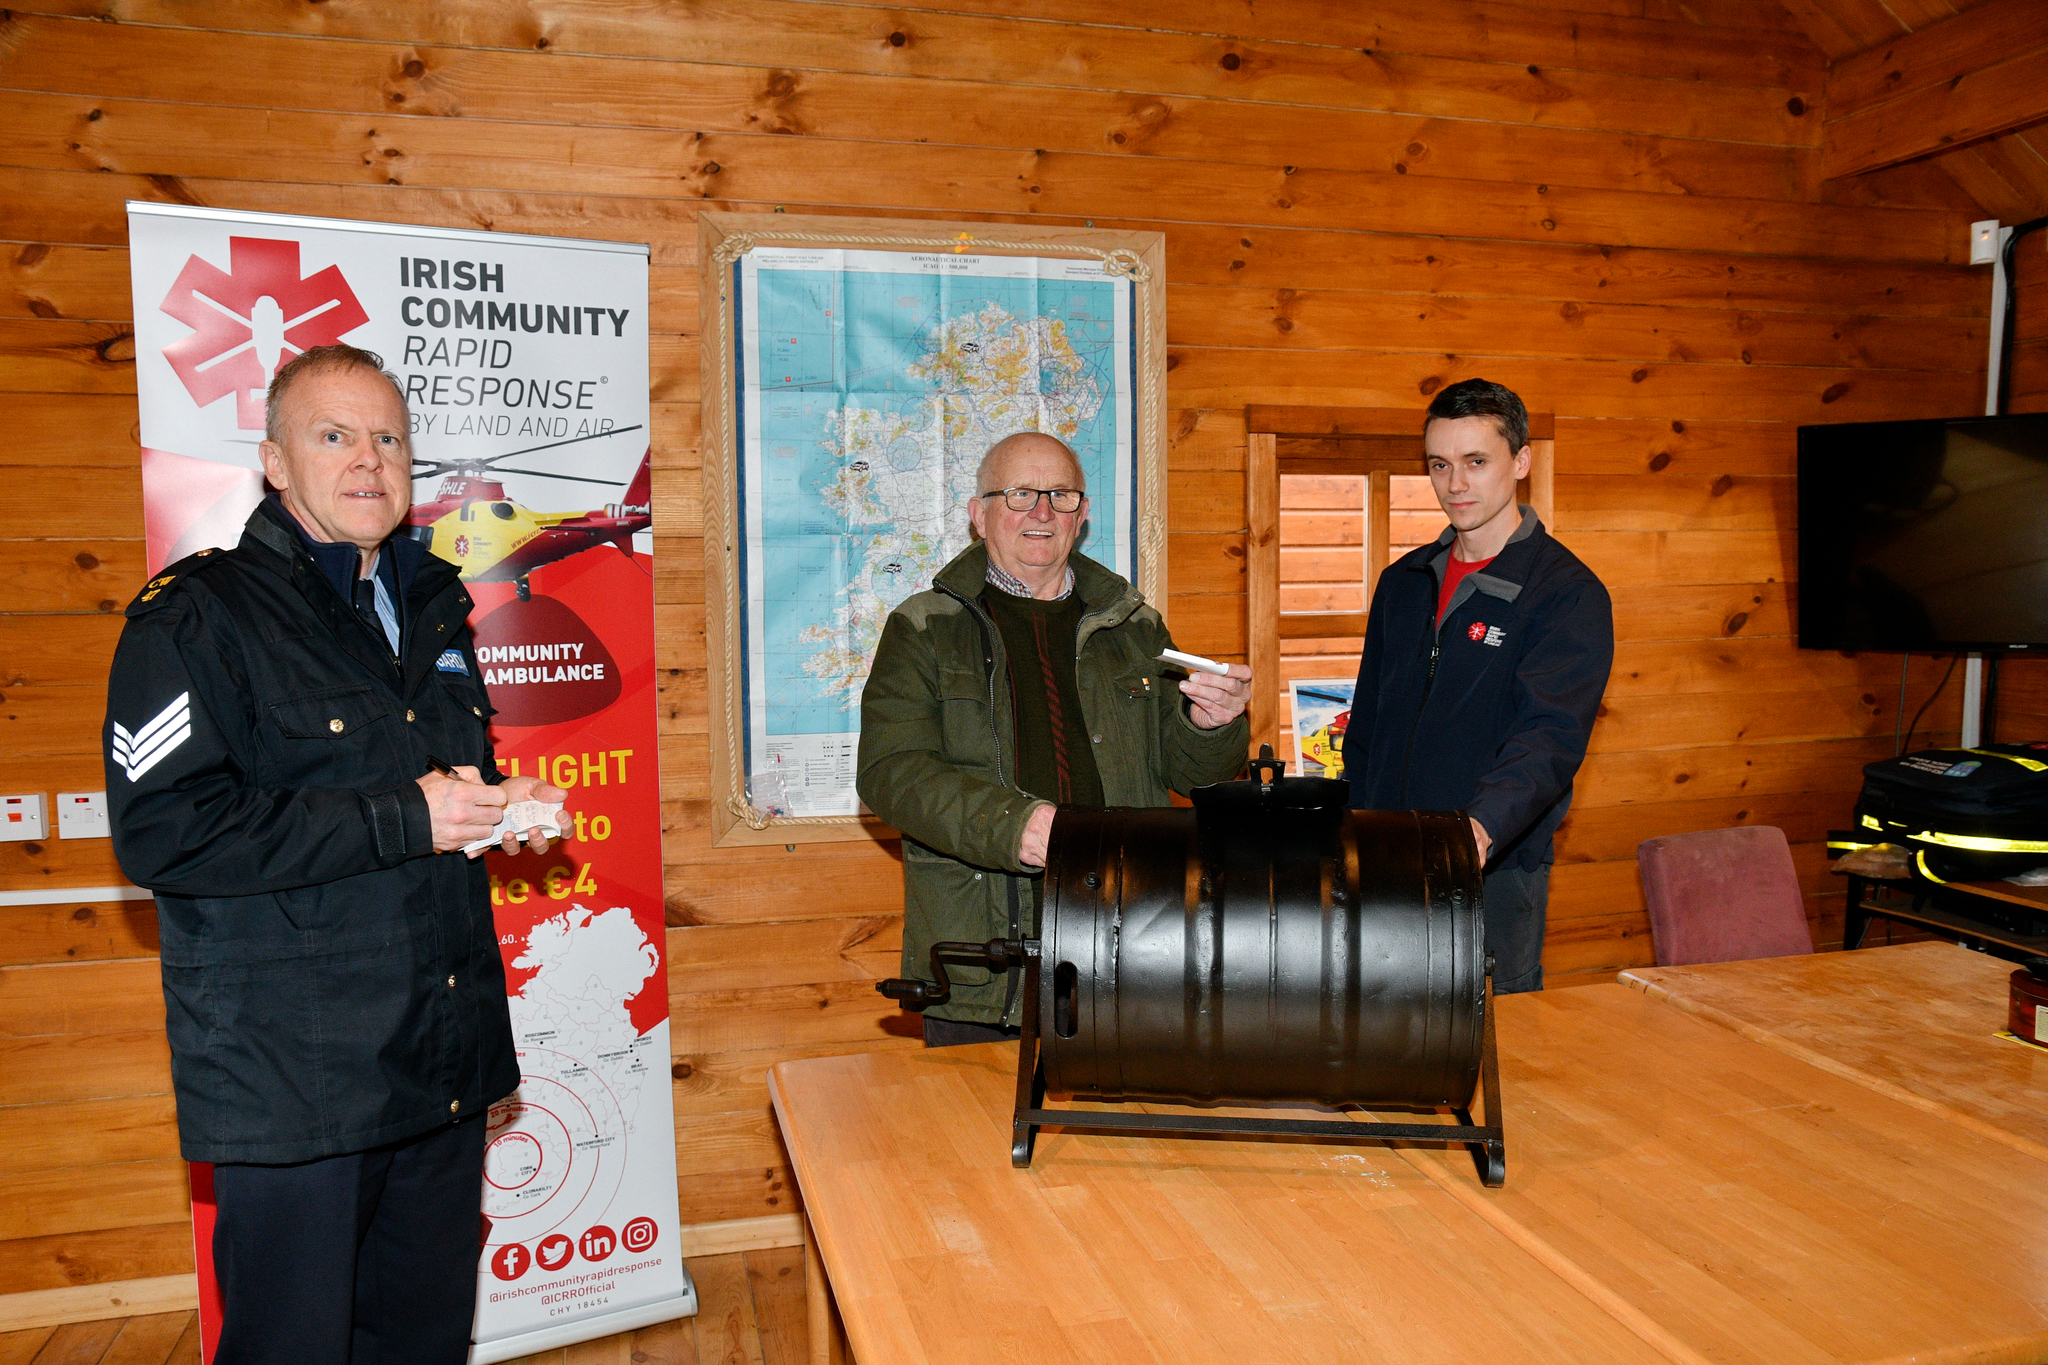 ICRR Air Ambulance Urgent Appeal Raffle Results